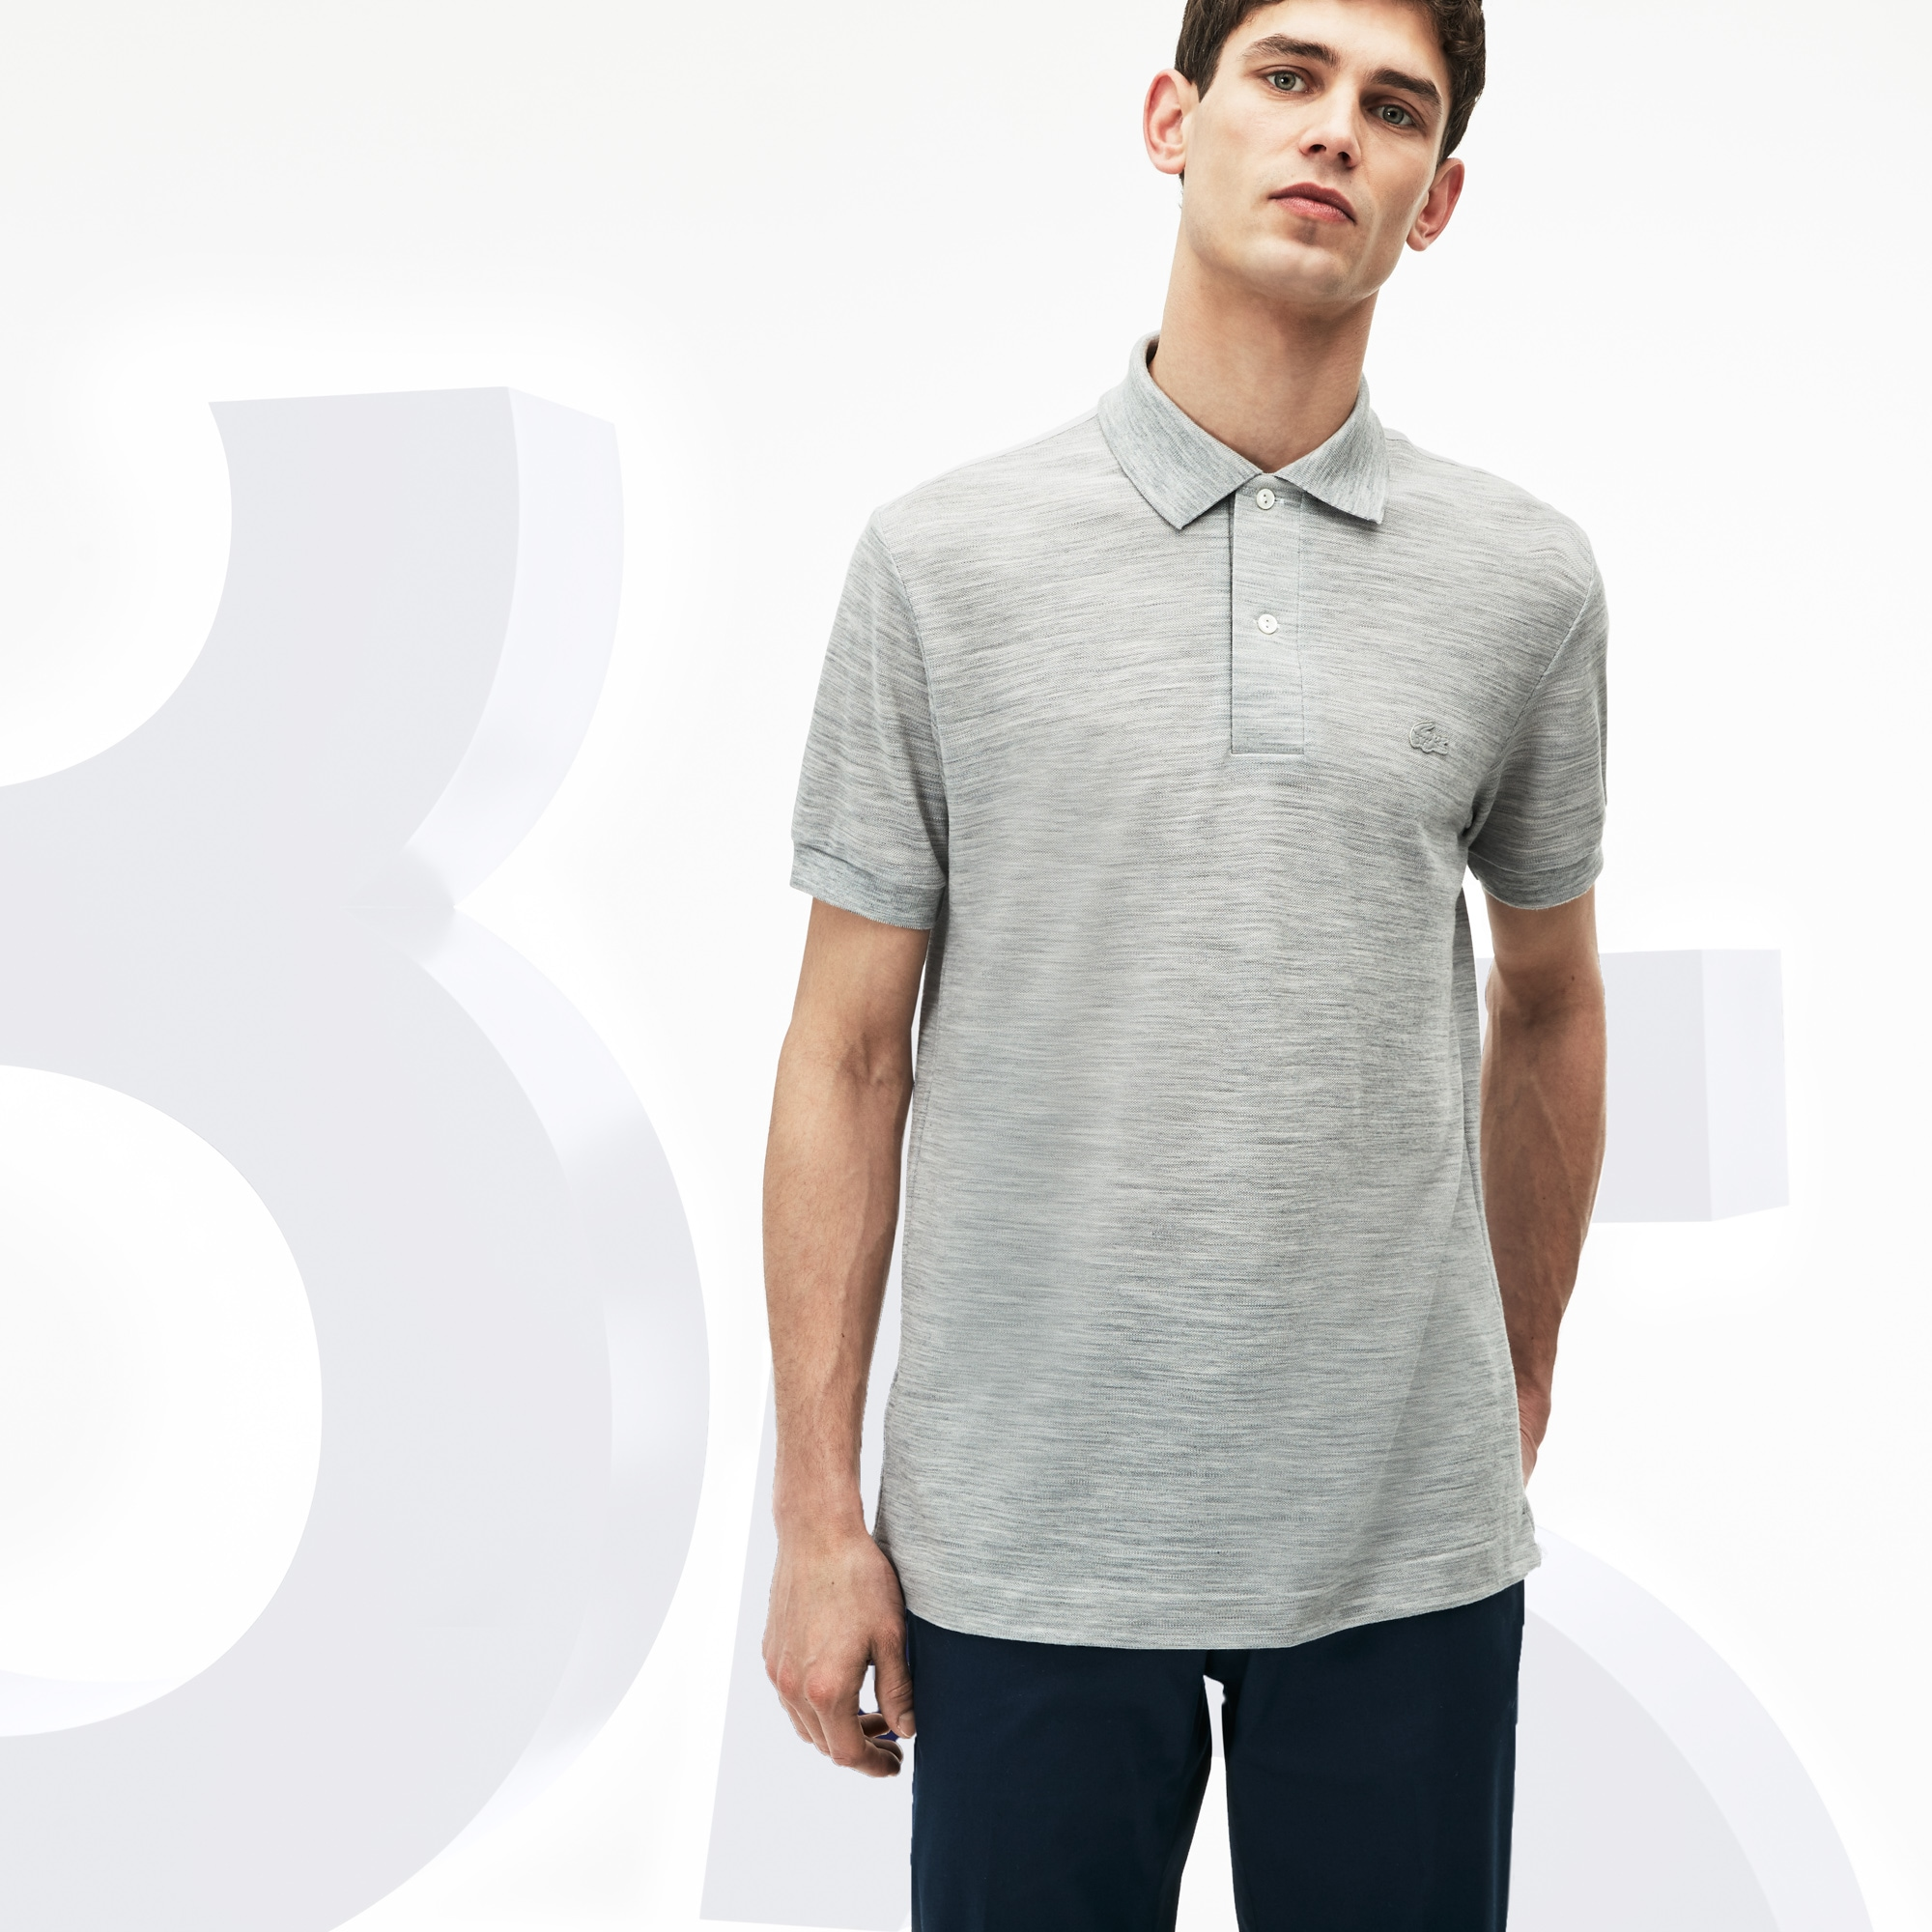 Men's Lacoste 85th Anniversary L.12.12 Limited Edition Wool Piqué Polo Shirt